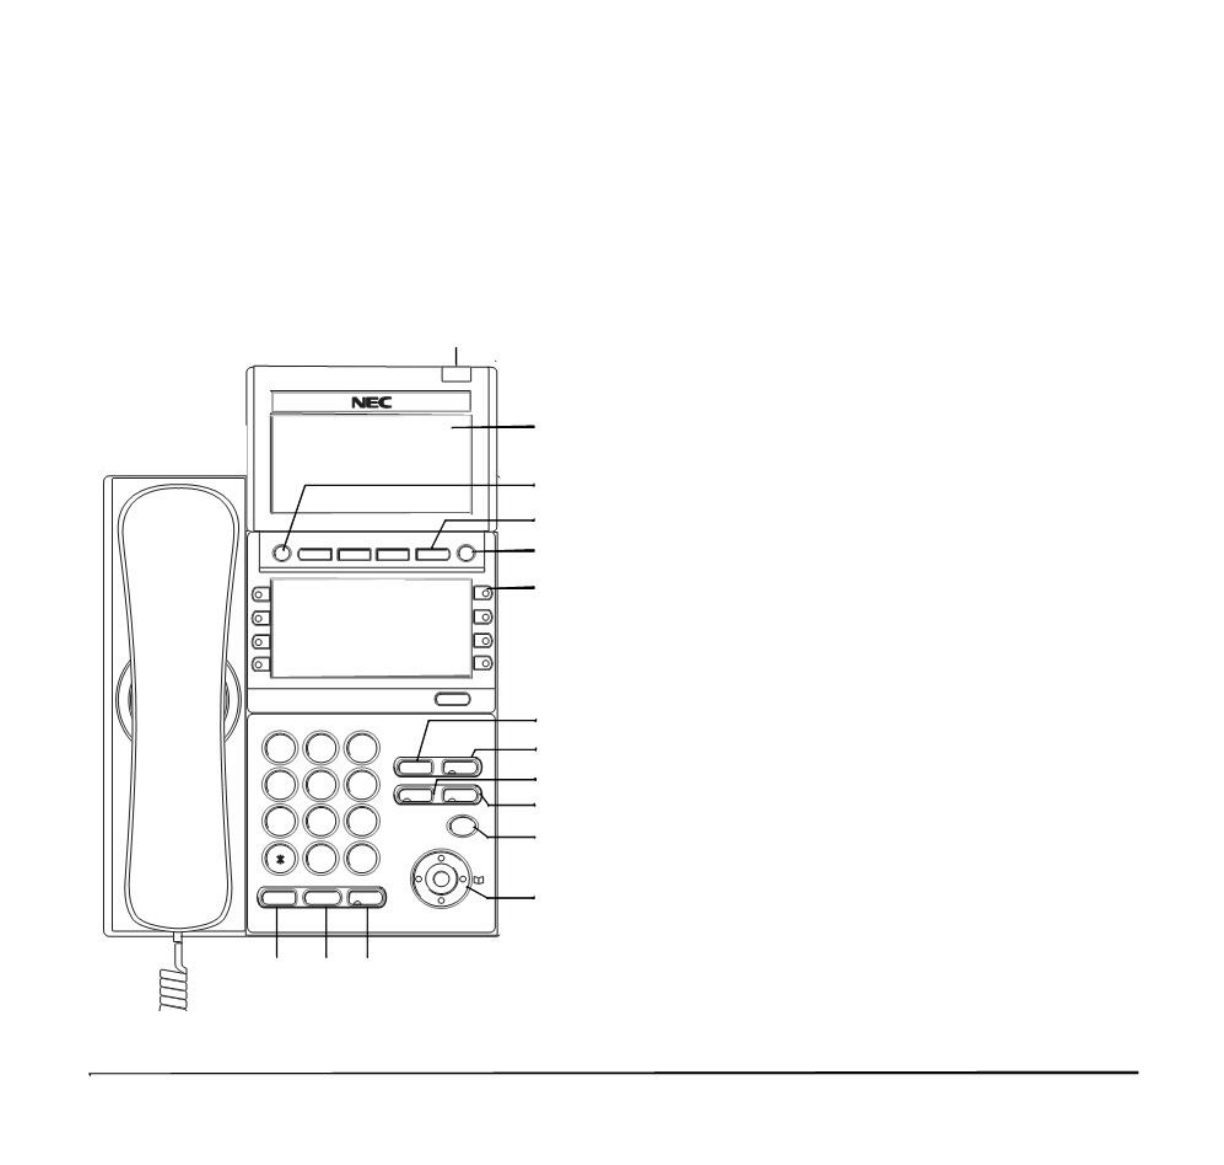 Nec Dt300 Series Users Manual ManualsLib Makes It Easy To